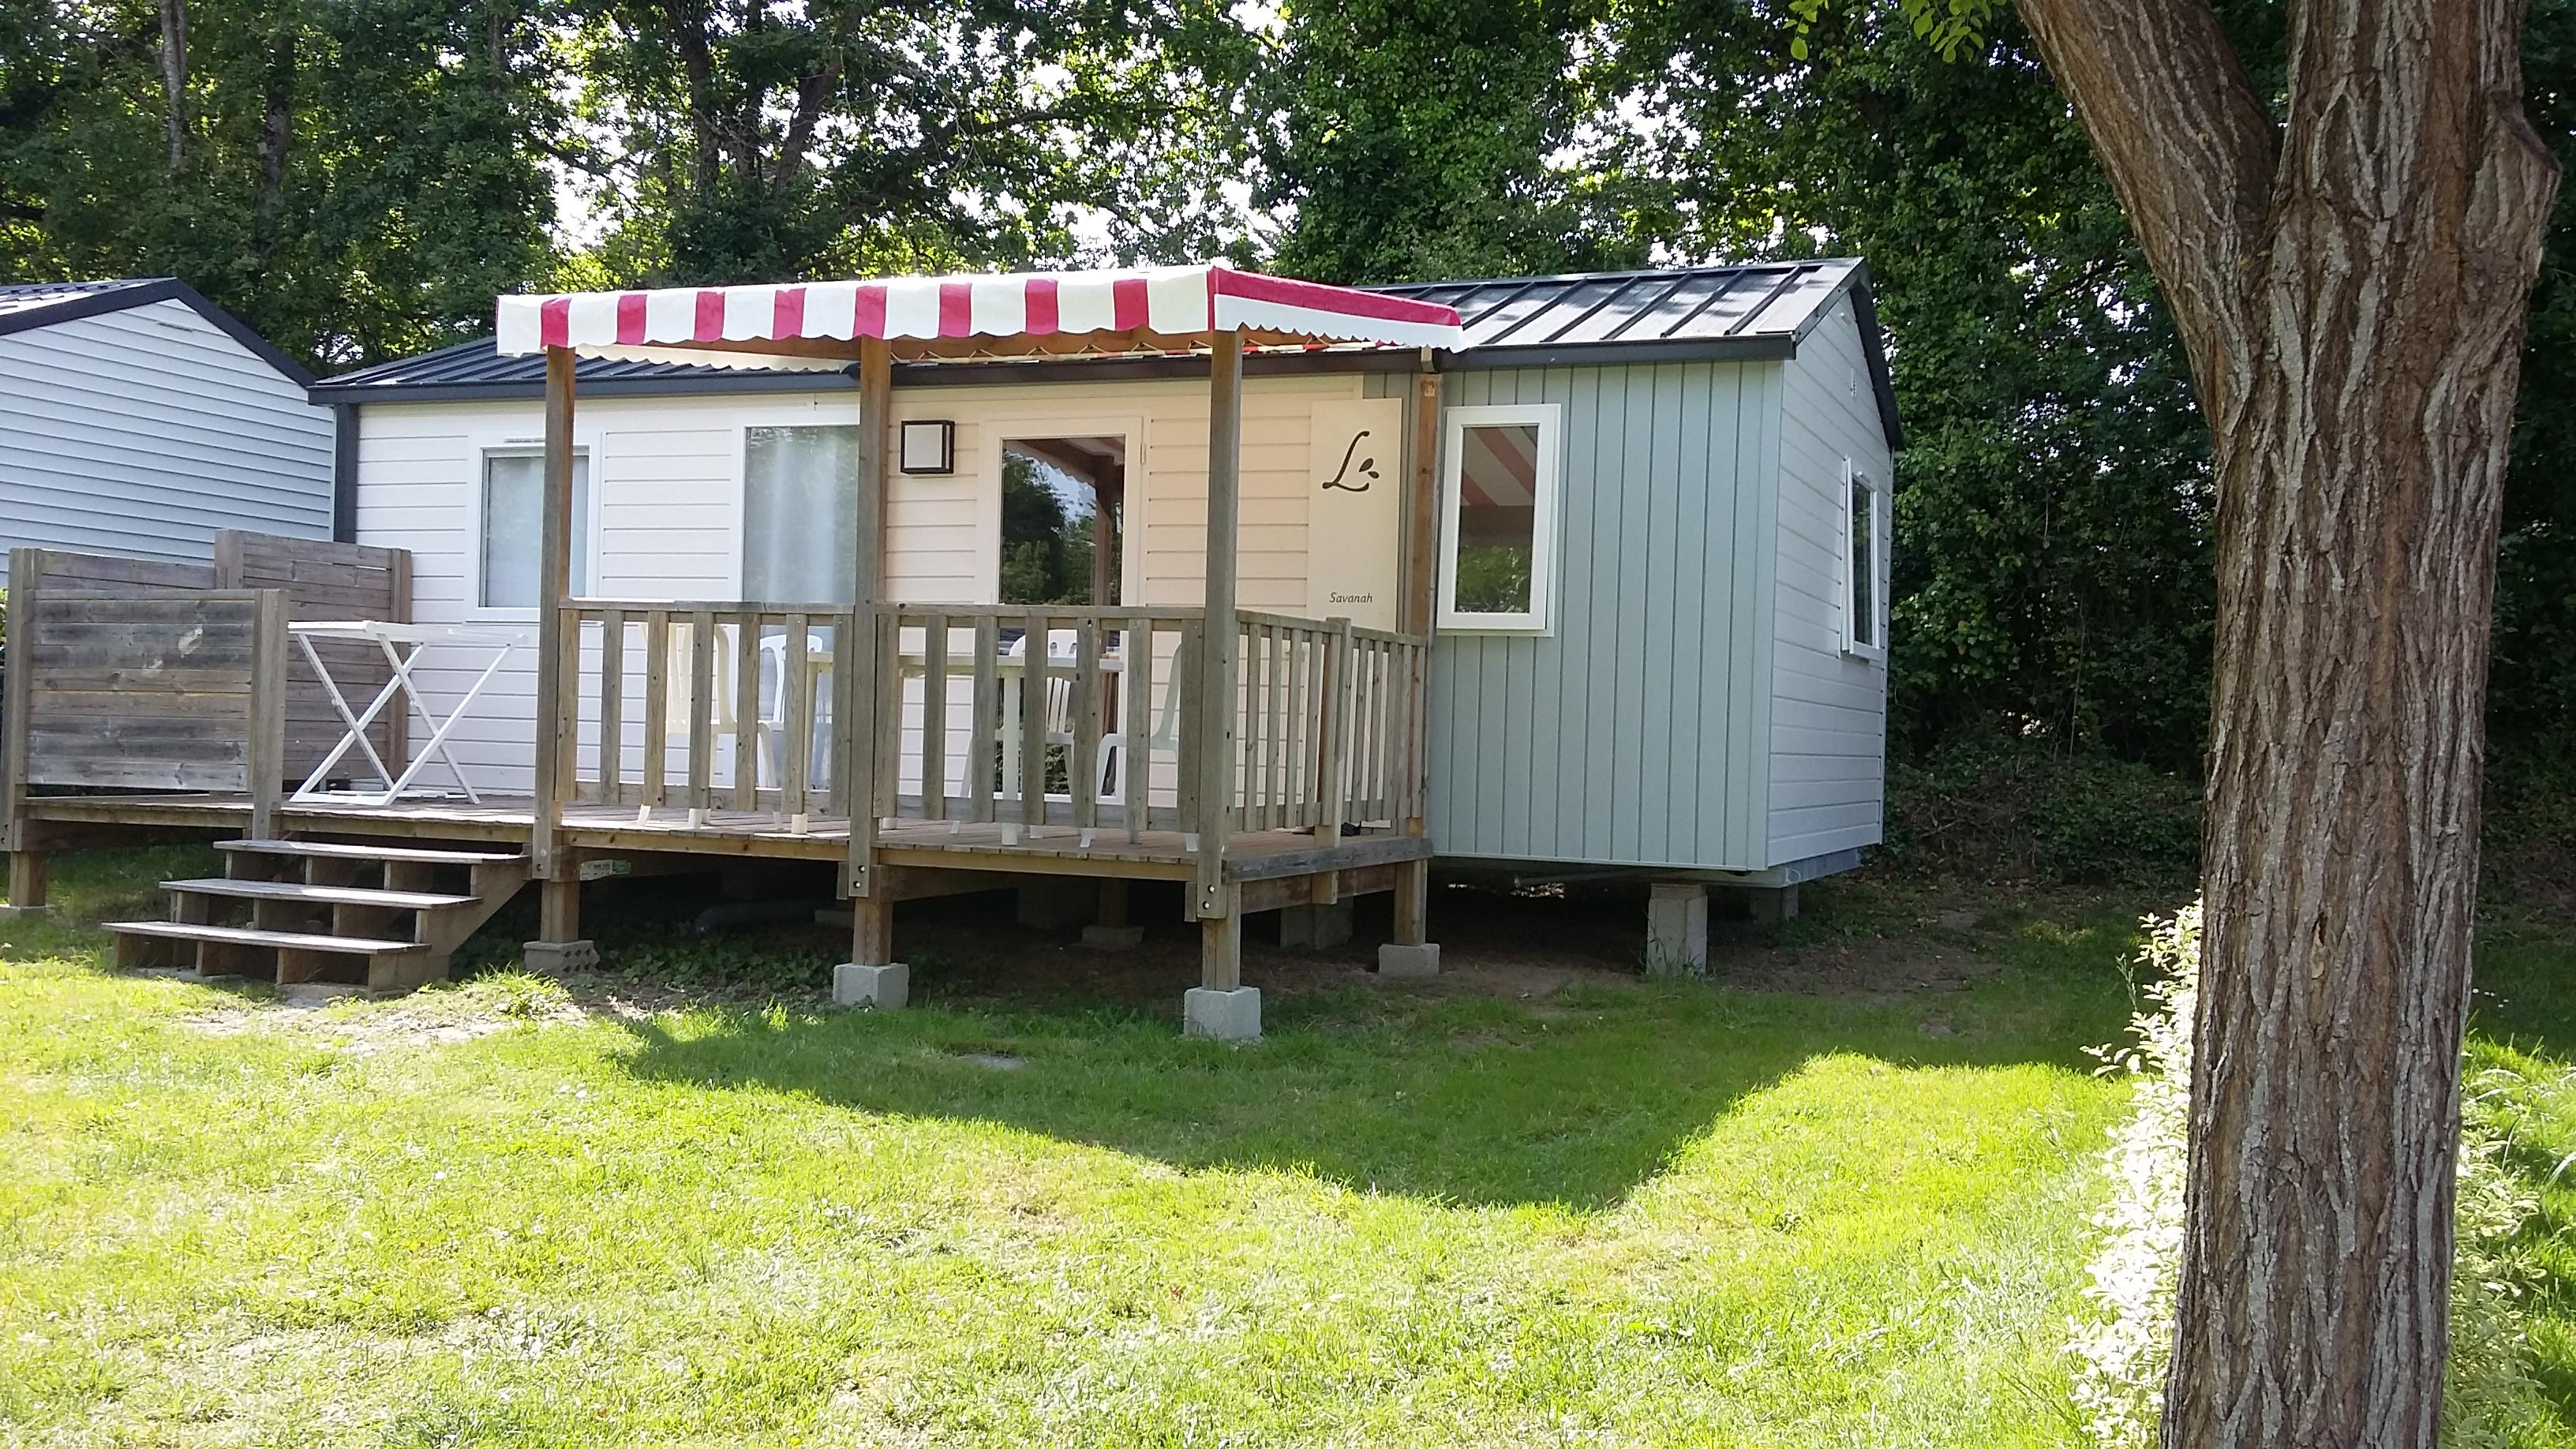 Locatifs - Cottage Savanah + terrasse semi-couverte - Camping Le Diben